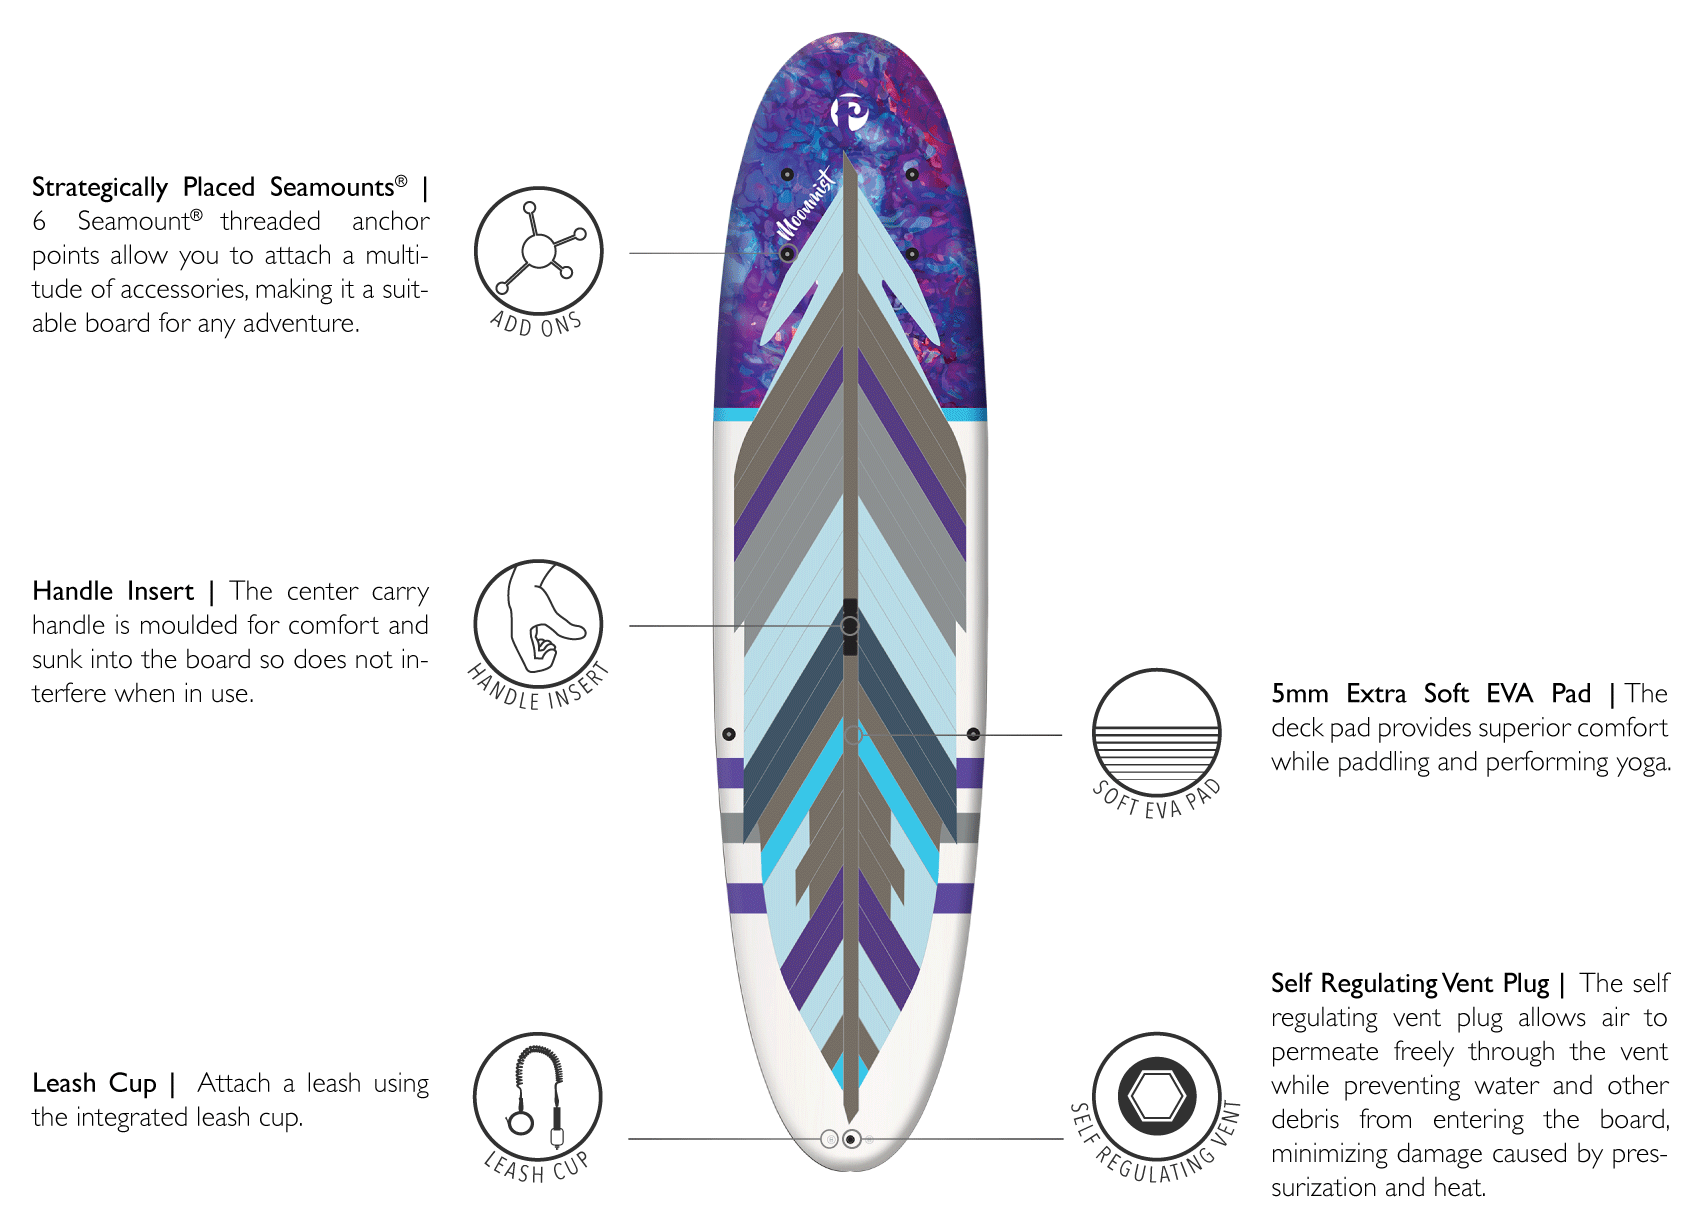 This is the very best yoga stand up paddle board. Moon mist yoga board including stragetgcally placed seamounts center grab handle for comfort and maneuvering leash up for leash 5mm extra soft Eva deck pad, self regulating vent plug